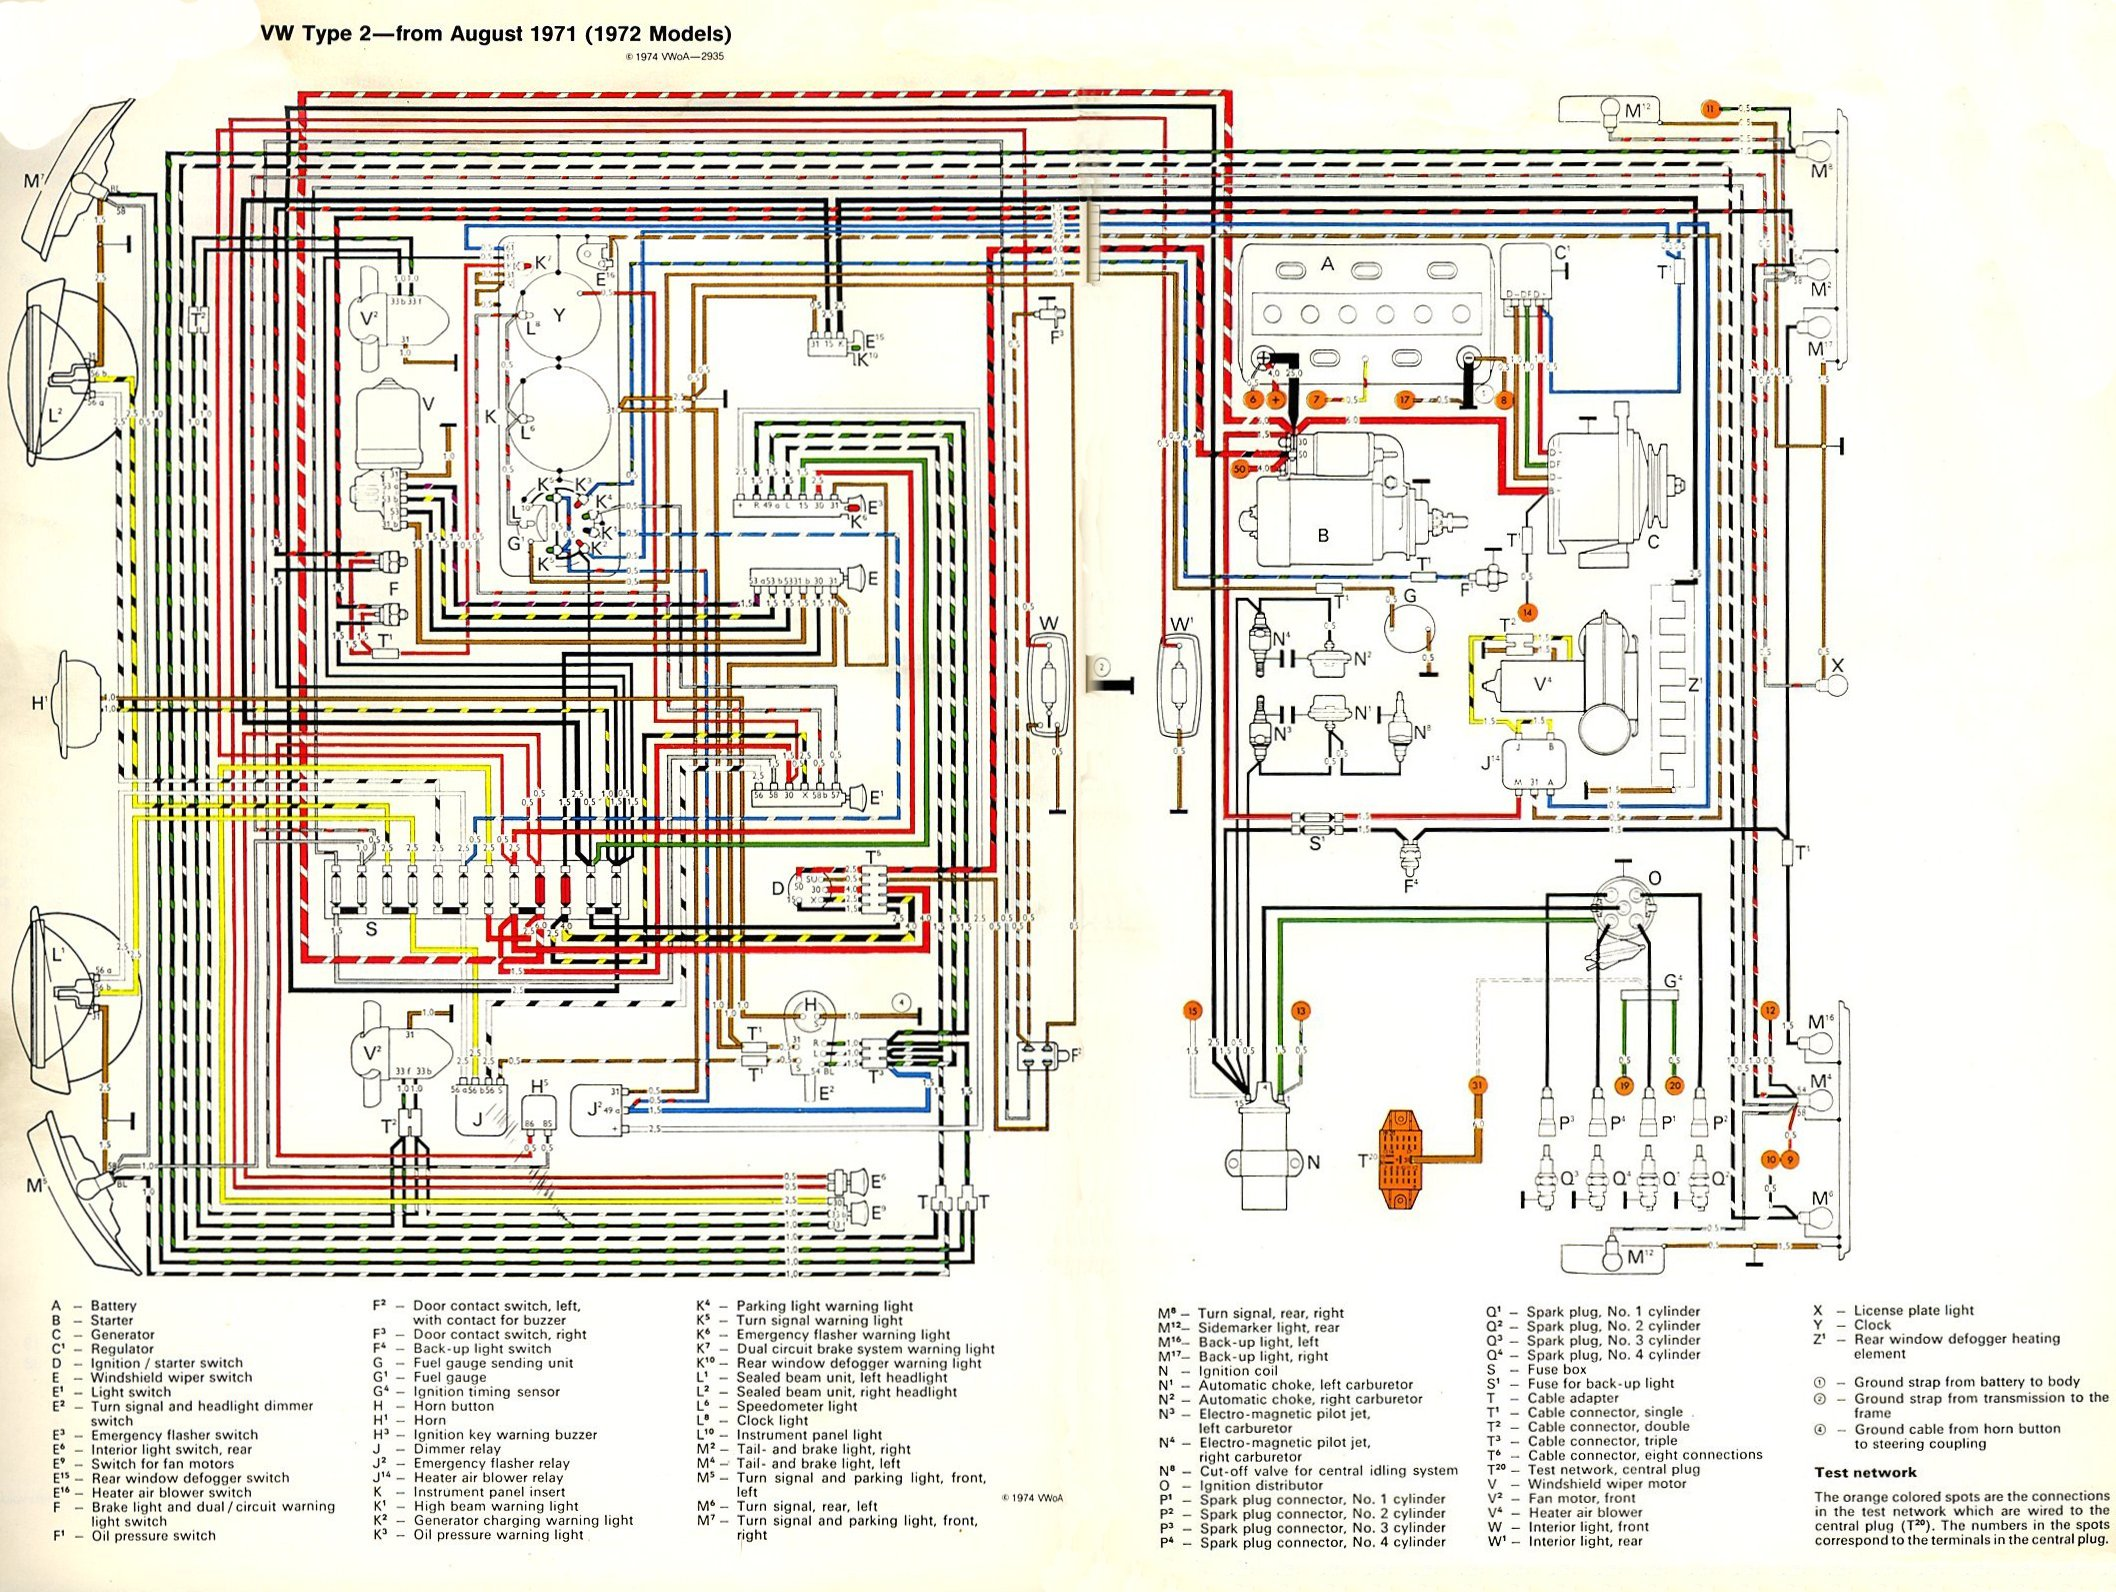 1972 chevelle wiring diagram 1972 image wiring diagram 71 chevelle wiring diagram 71 auto wiring diagram schematic on 1972 chevelle wiring diagram